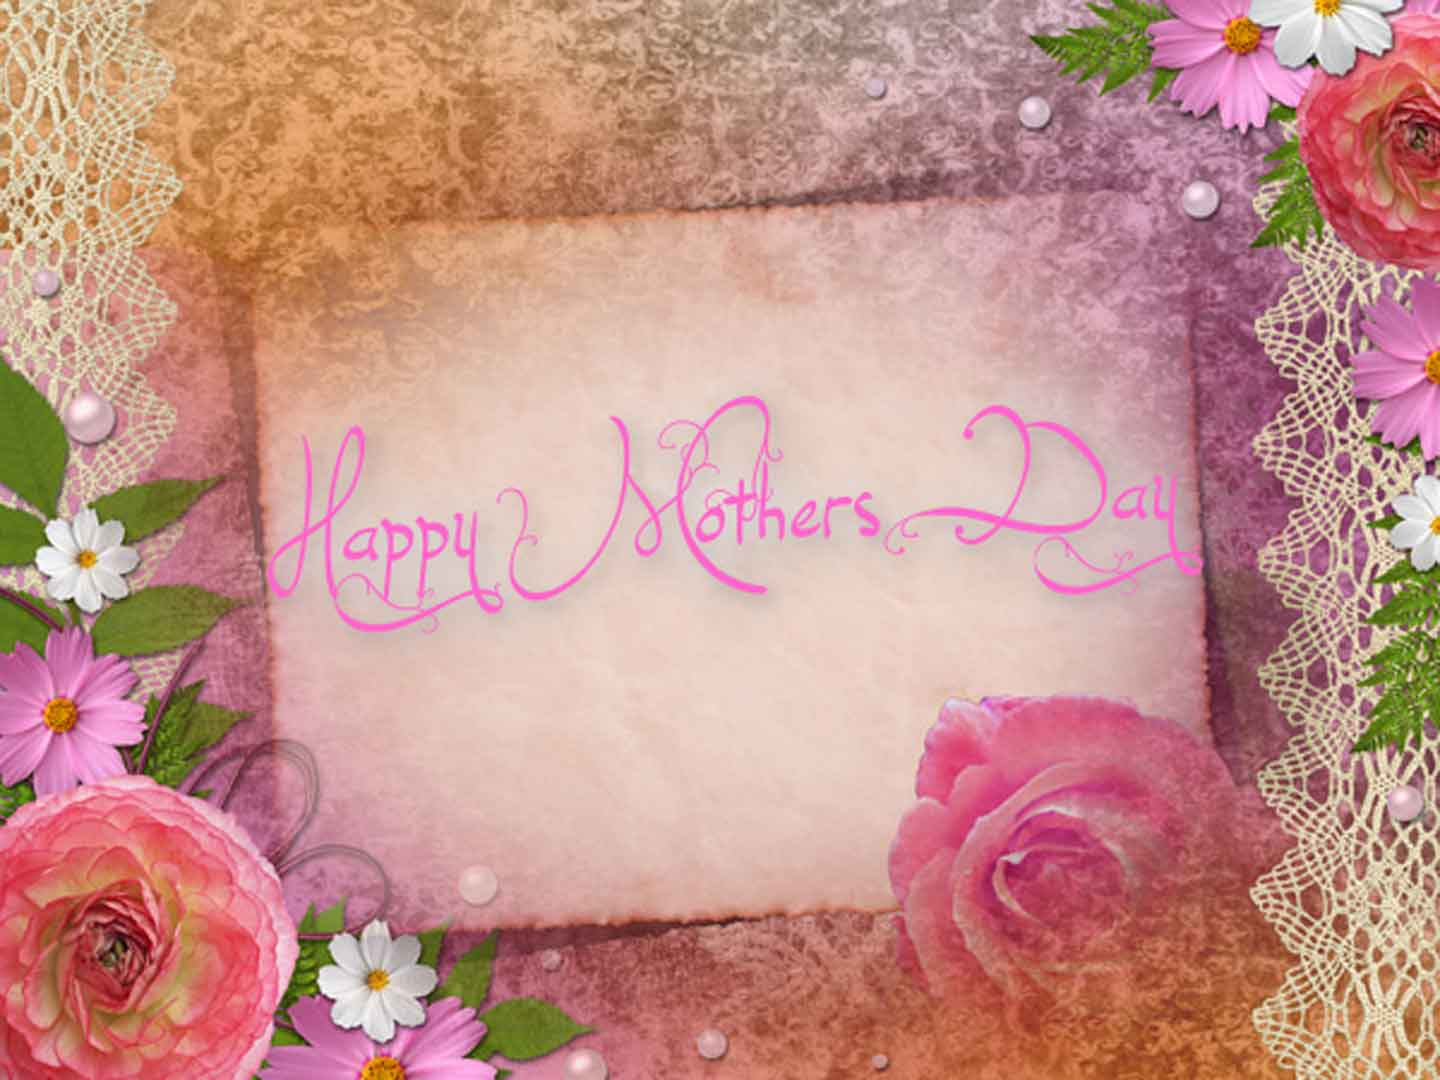 Wallpaper Of Happy Mothers Day: Free Mother's Day Wallpapers